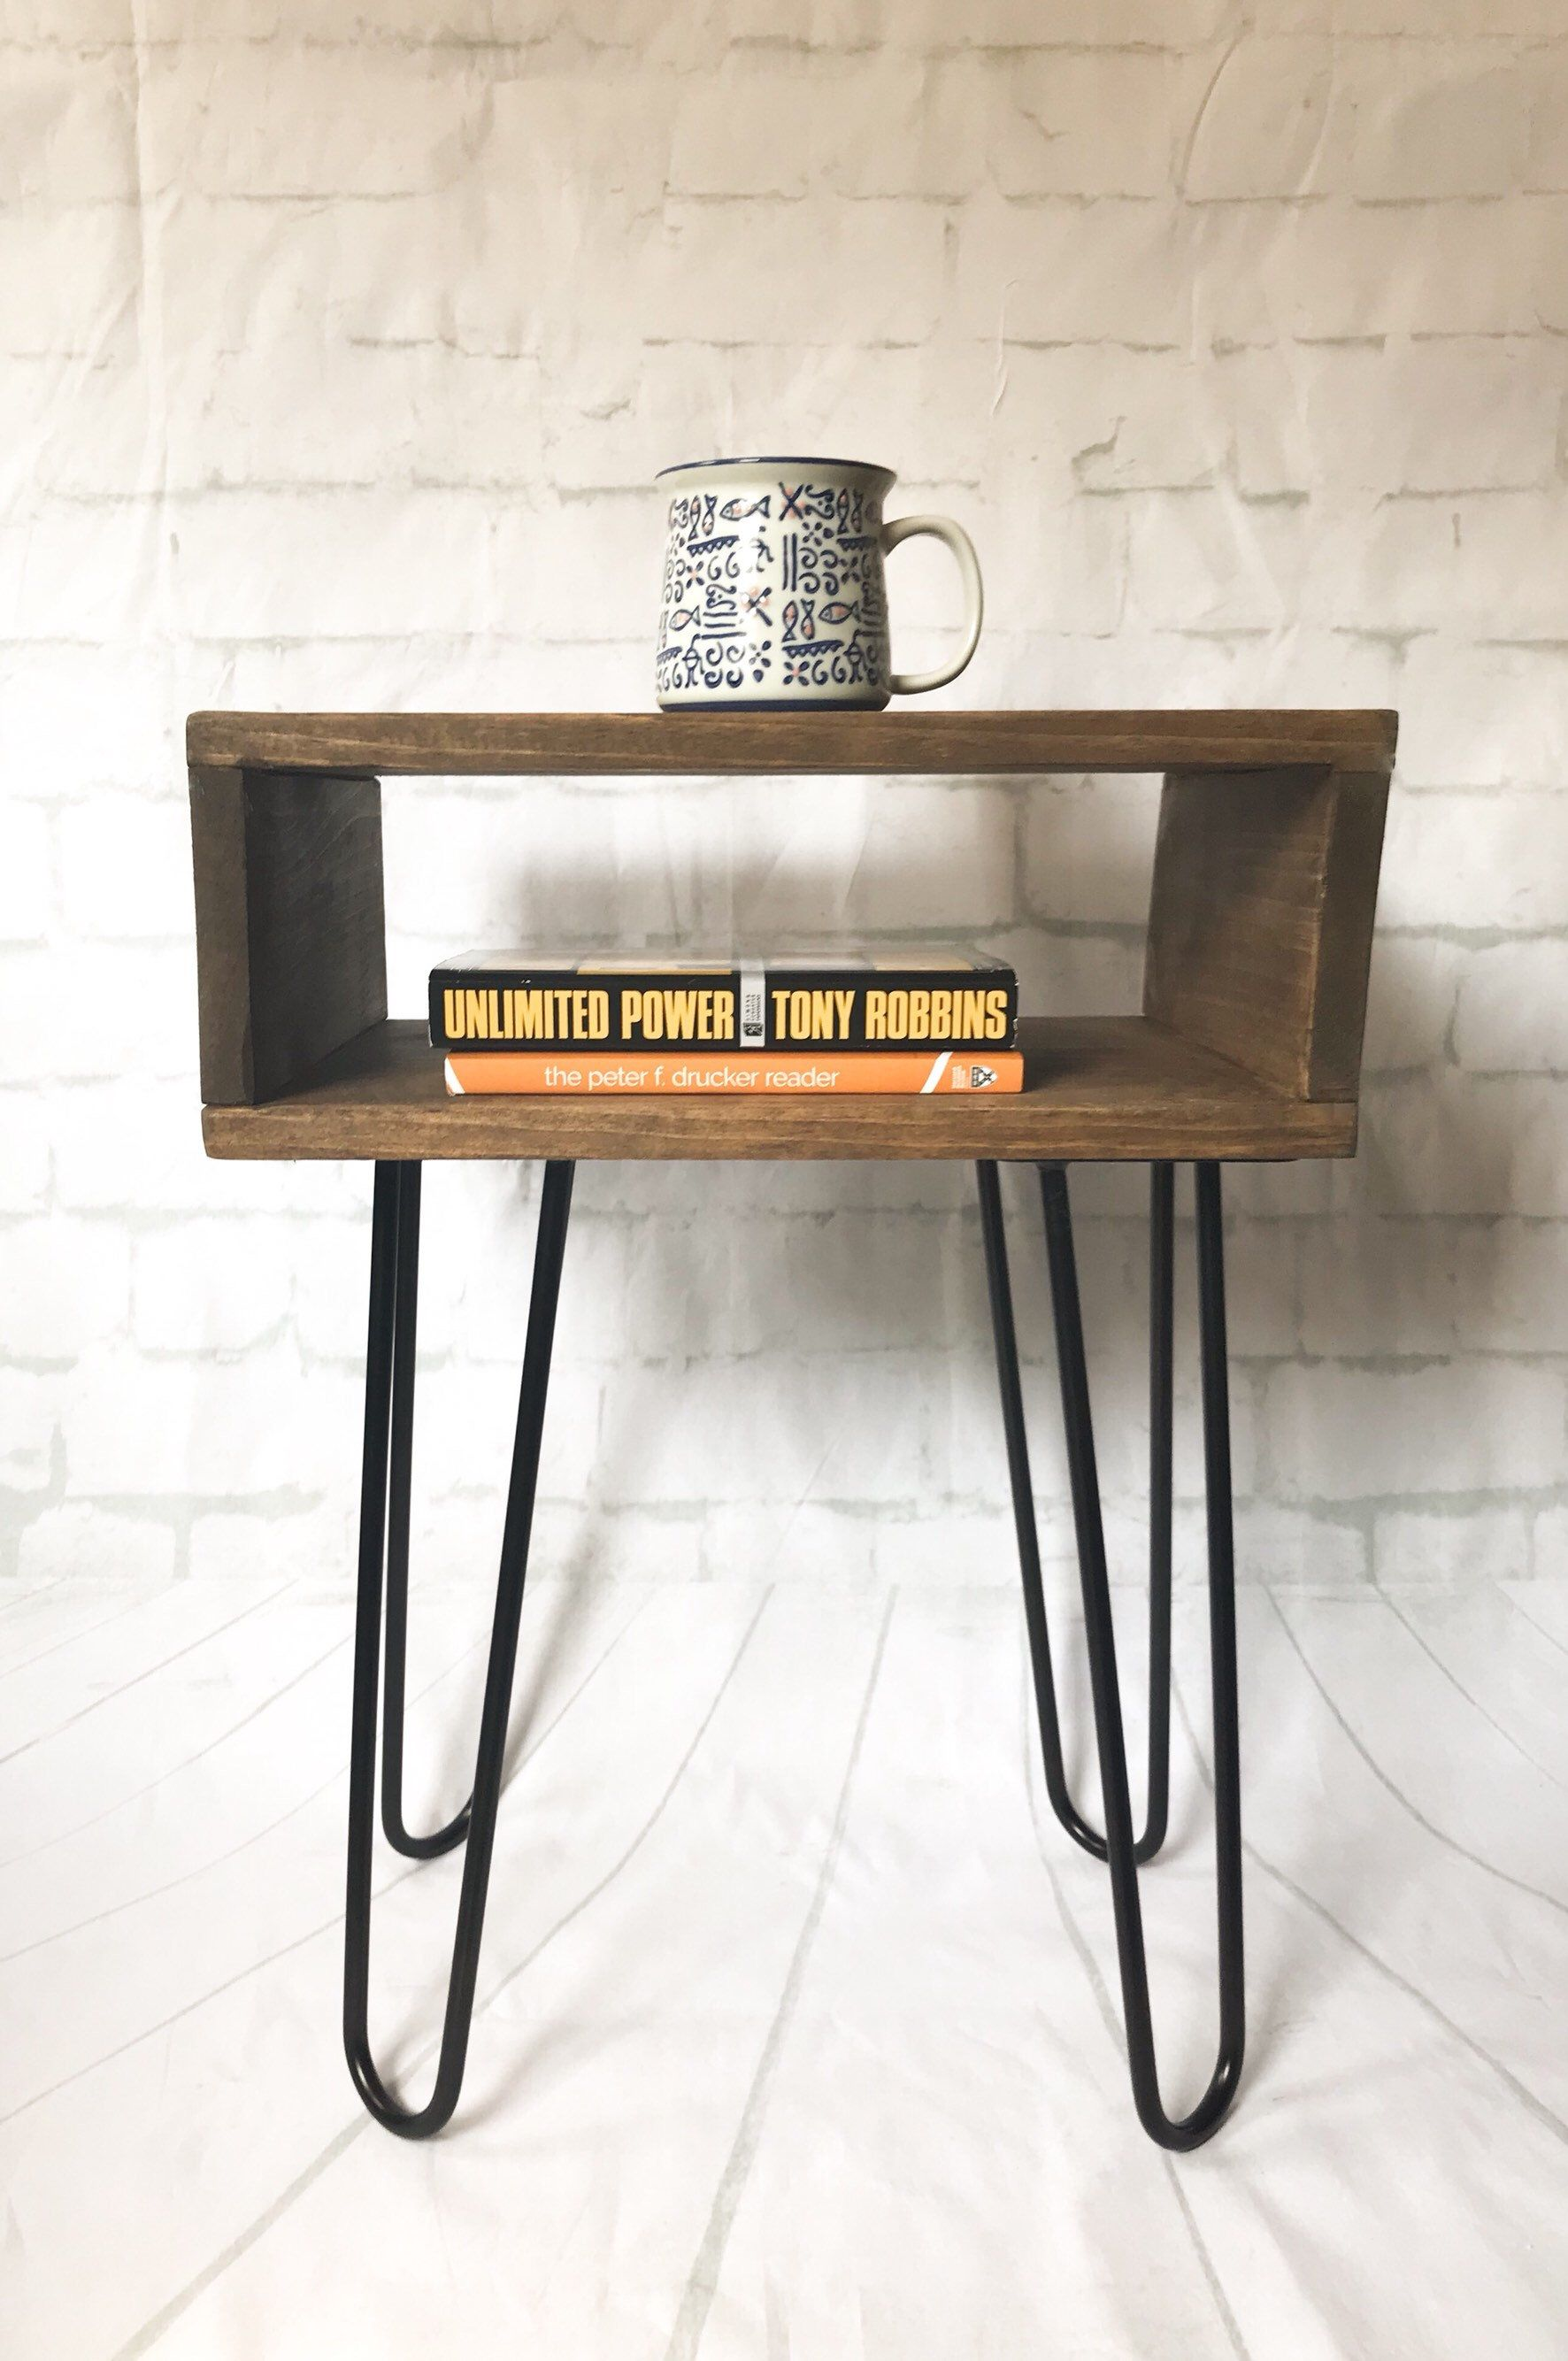 Minimalist Nightstand Modern Mid Century Credenza Record Player Stand Turntable Stand Hairpin Side Table Minimalist Industrial Console Mid Century Modern Nightstand Minimalist Nightstand Small Nightstand